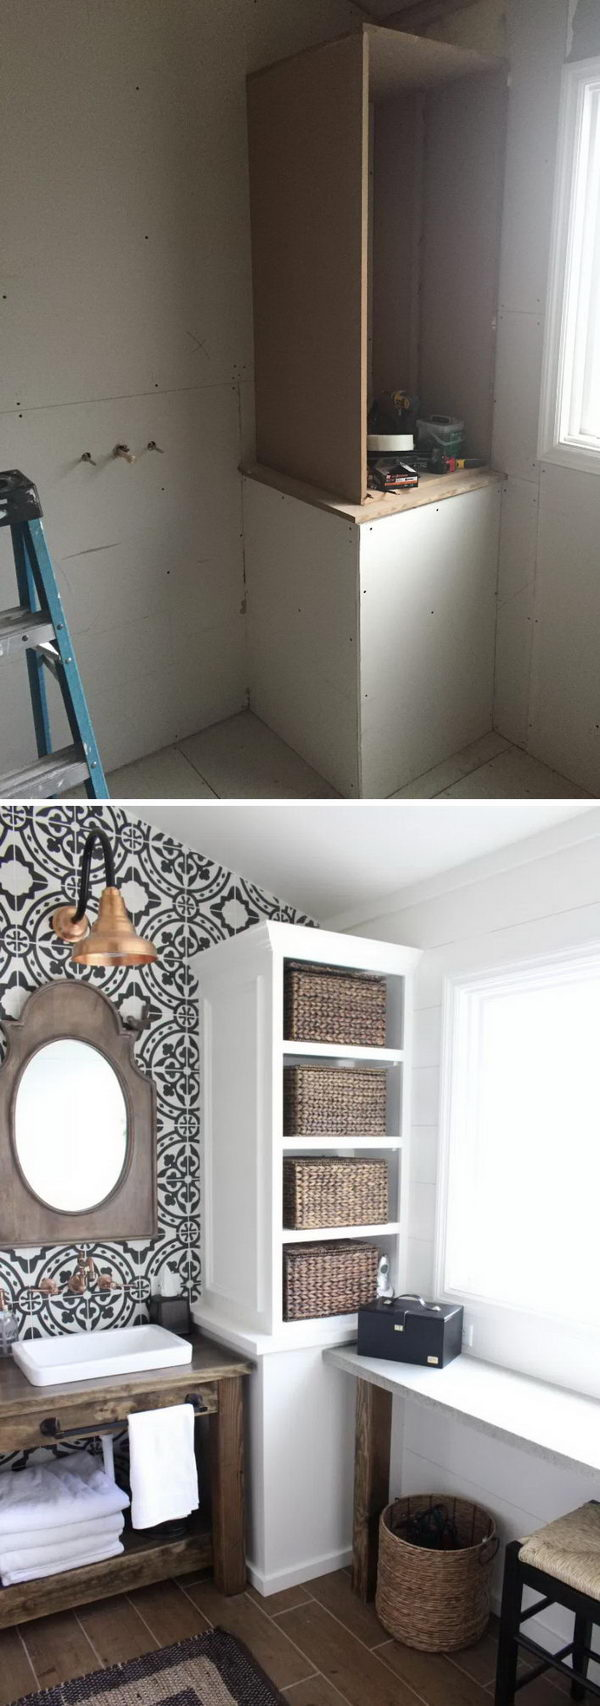 Before And After Awesome Bathroom Makeovers Hative - Modern bathroom makeovers